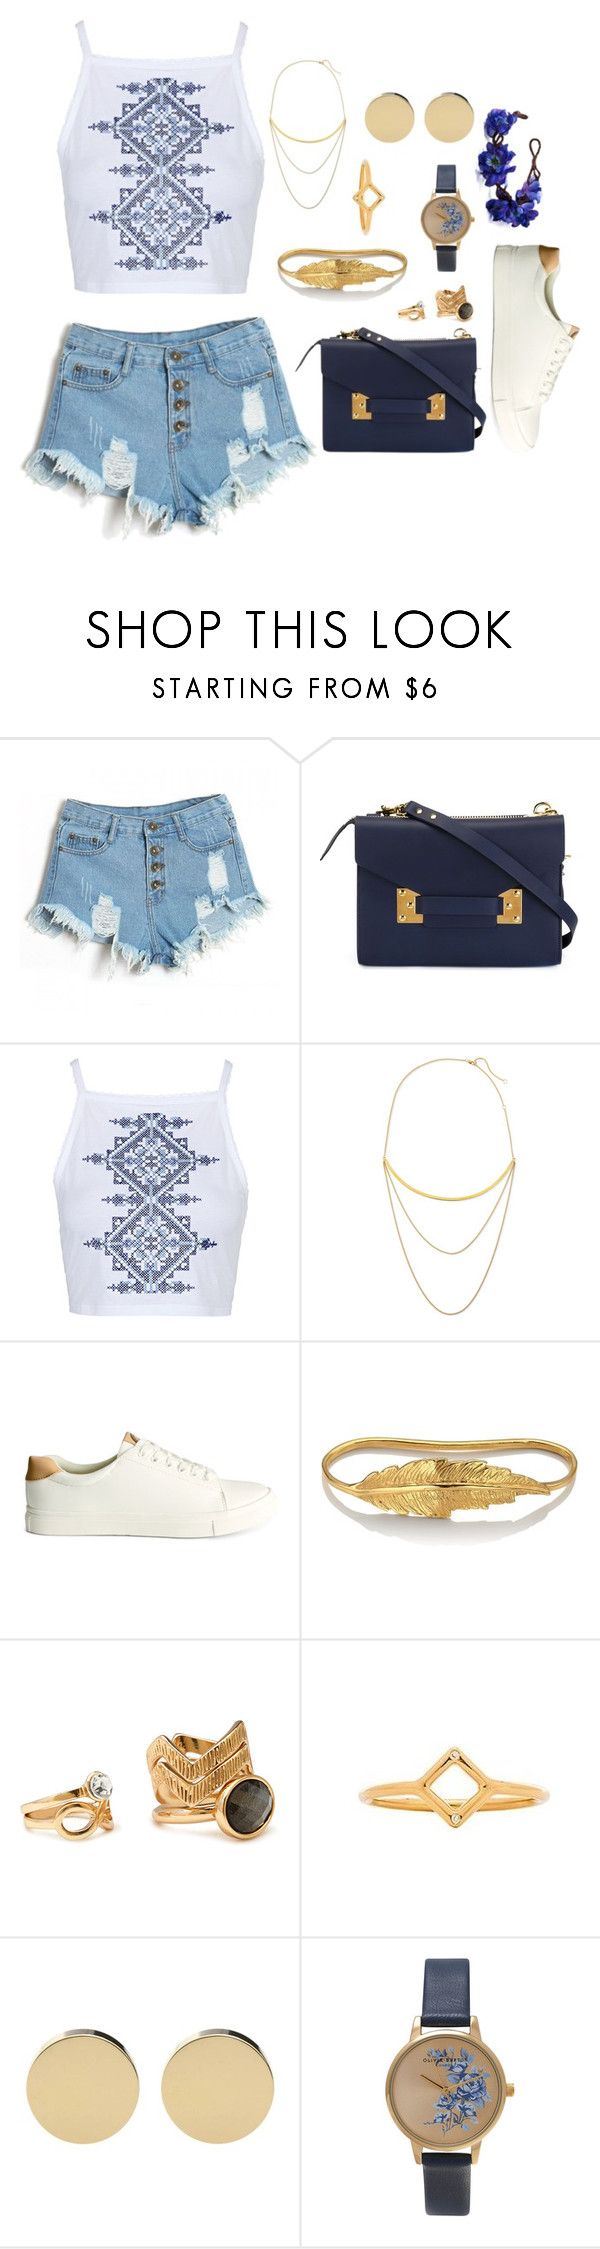 """Last Days of Summer"" by thenerdyfangirl ❤ liked on Polyvore featuring Sophie Hulme, Topshop, Jennifer Zeuner, H&M, LeiVanKash, Forever 21, Gorjana and Olivia Burton"